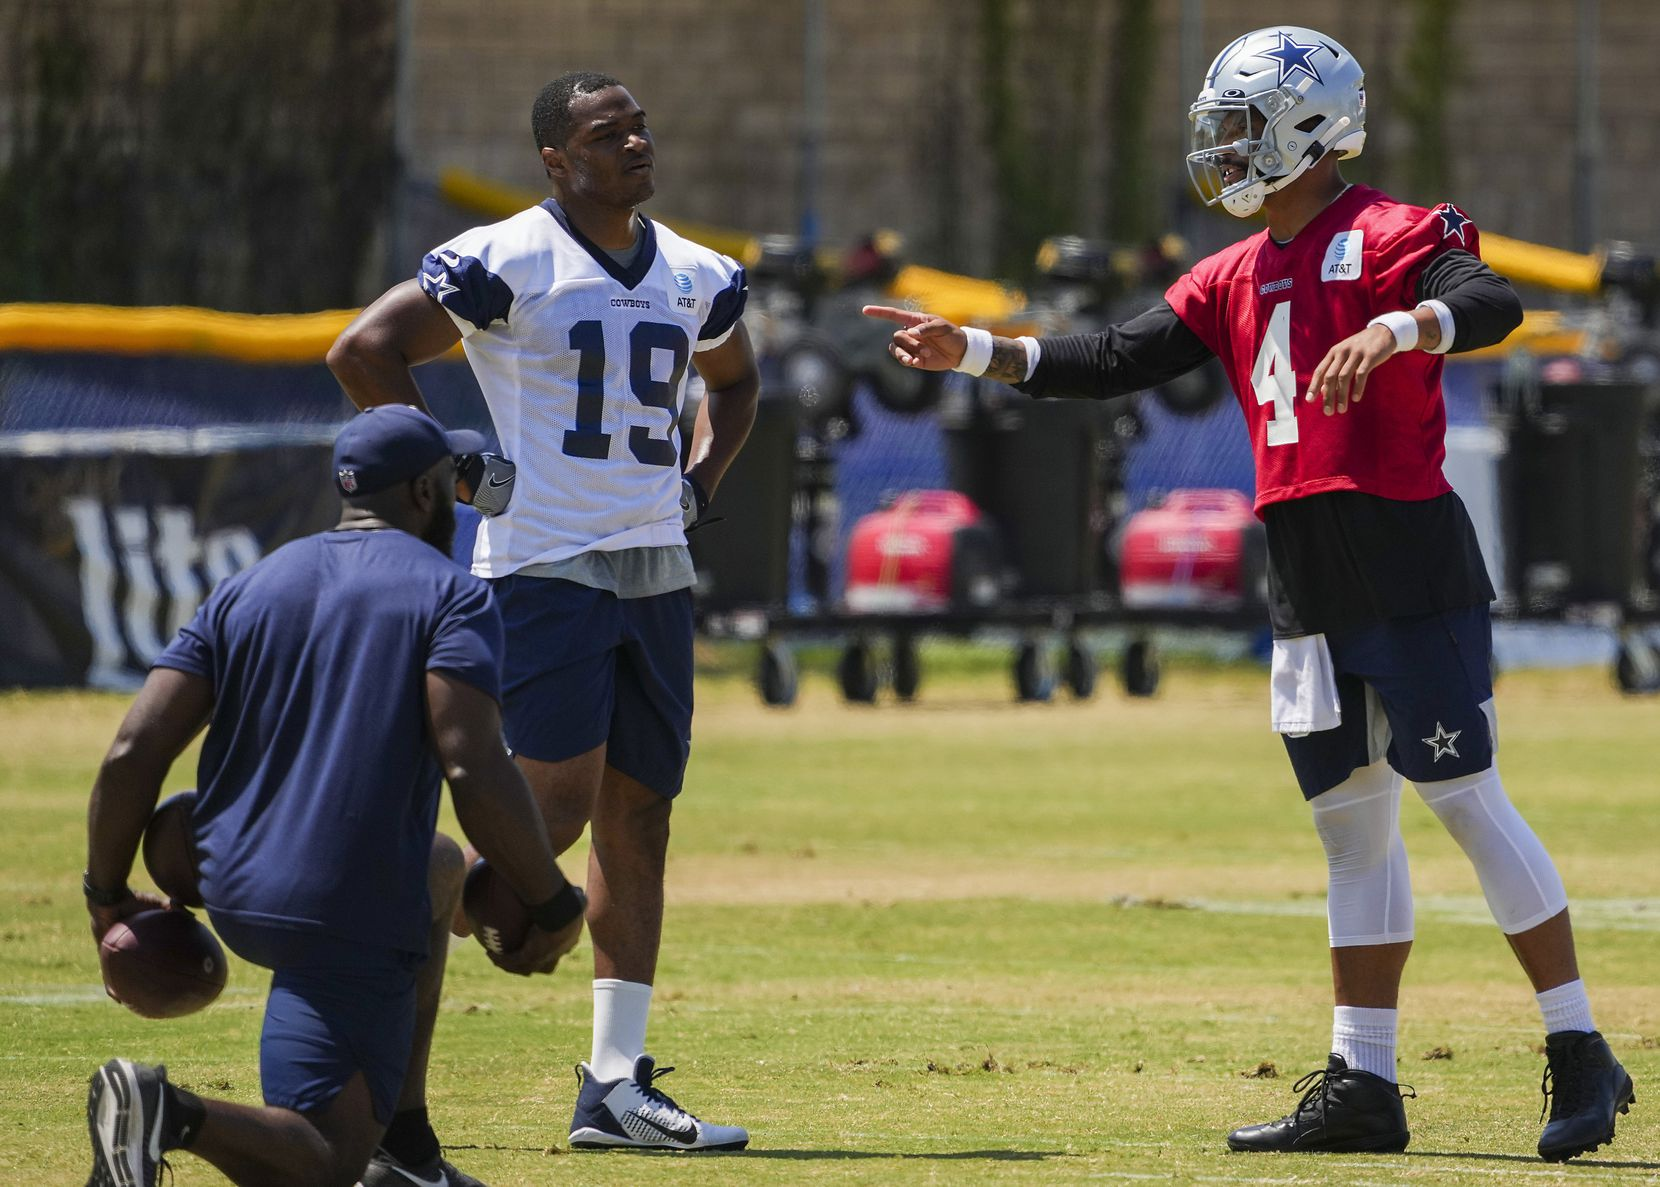 Dallas Cowboys quarterback Dak Prescott (4) works with wide receiver Amari Cooper (19) to the side of a practice at training camp on Tuesday, Aug. 10, 2021, in Oxnard, Calif.